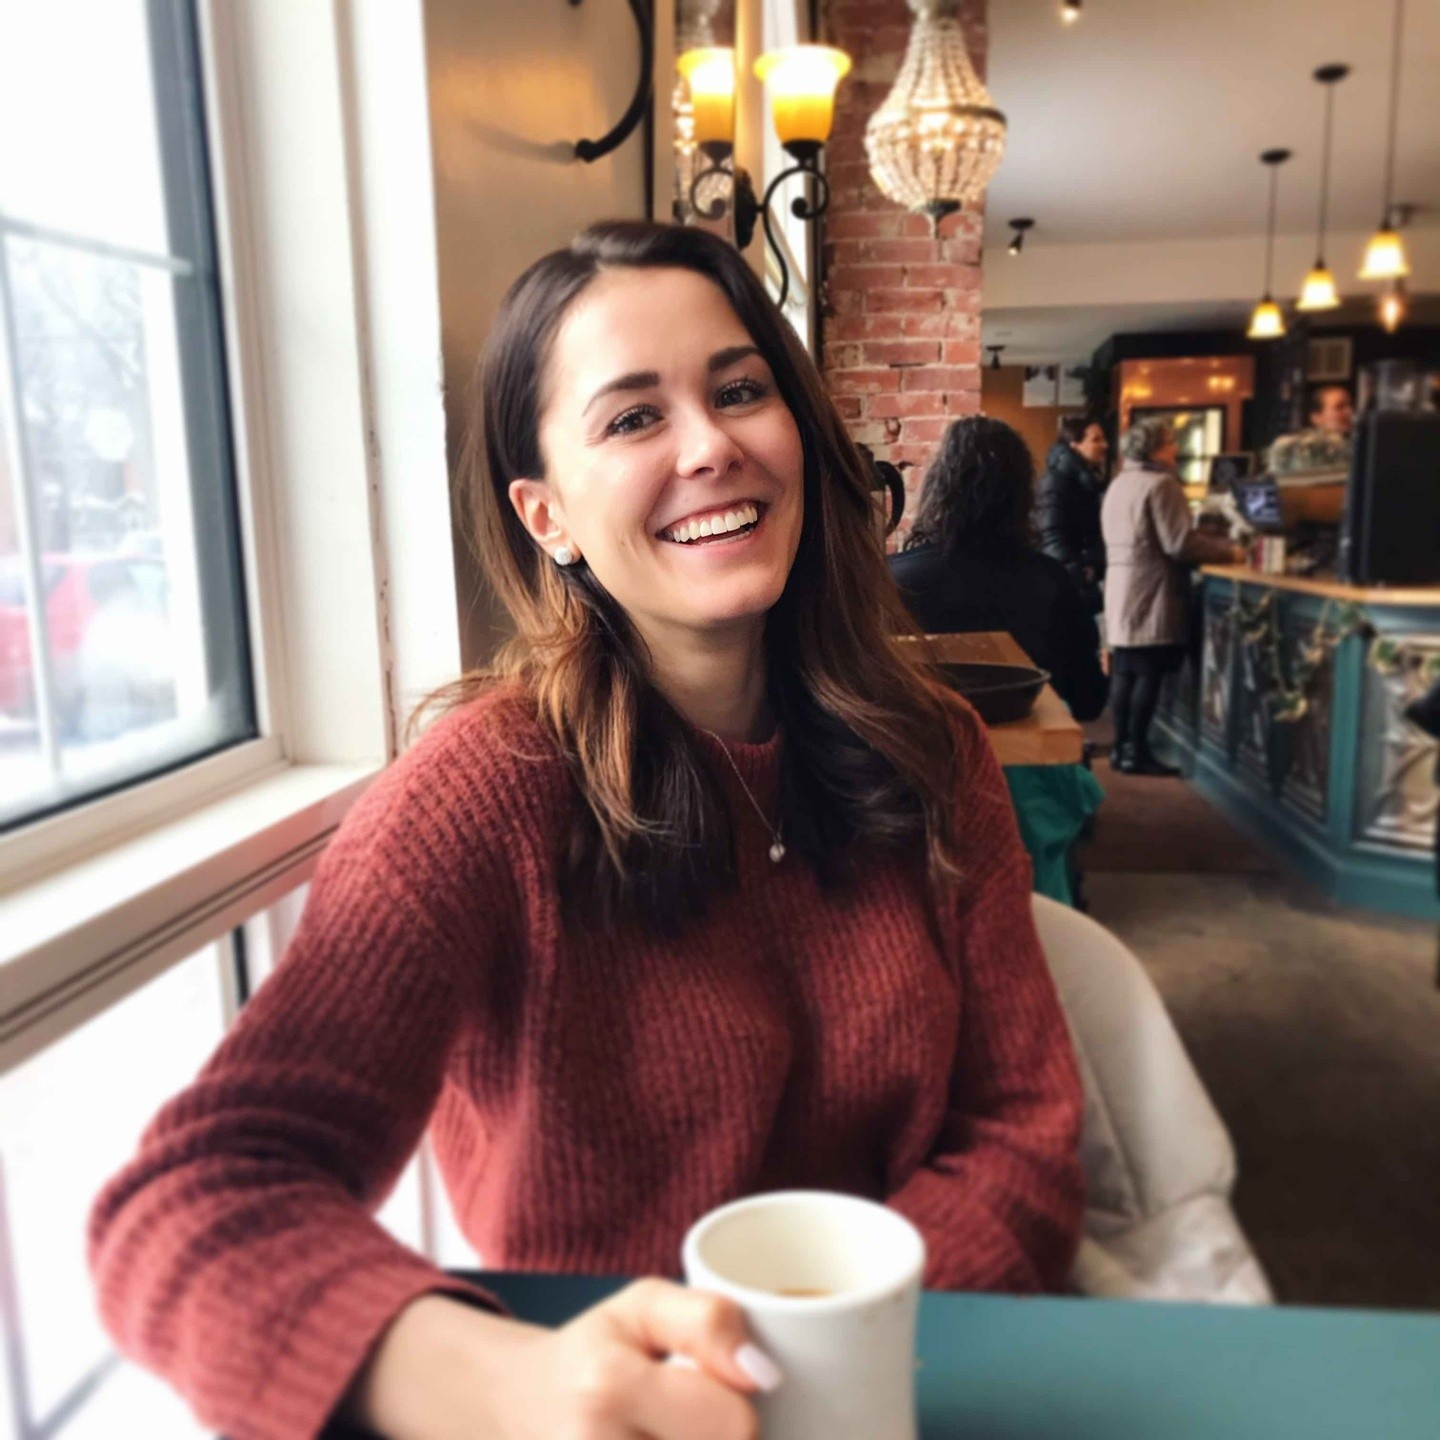 Hannah is a Registered Dietitian and Nutritionist with Vitality Nutrition in Saskatoon. Hannah's areas of focus include fertility support, nutrition for pregnancy, sports nutrition, and disordered eating support.